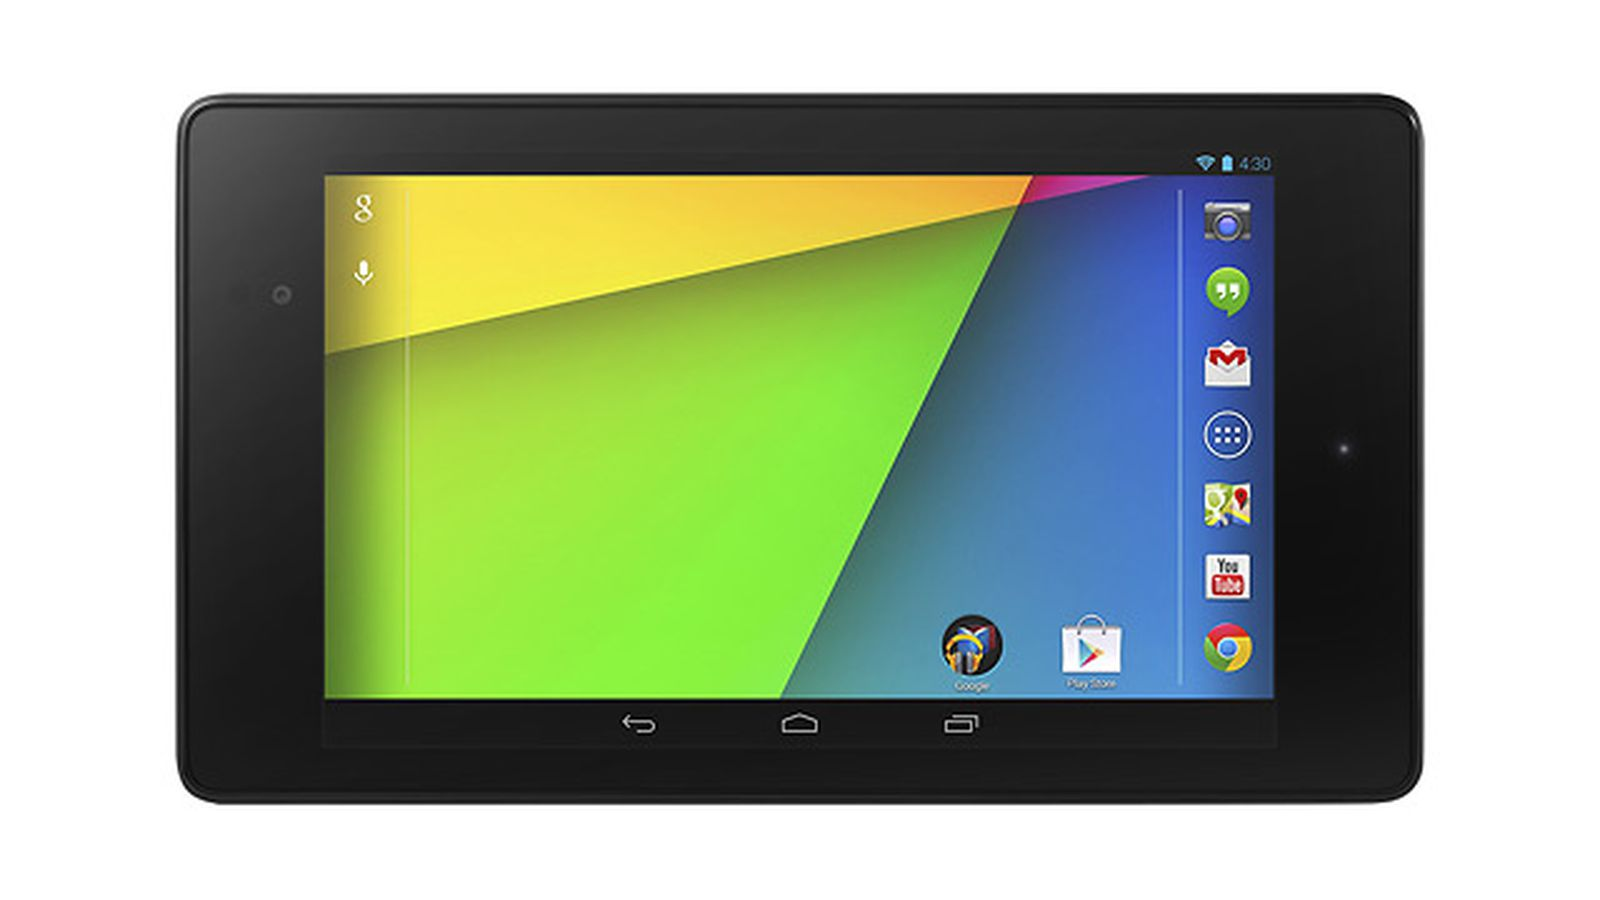 New Nexus 7 up for pre-order at Best Buy with Android 4.3 and $229.99 starting price - The Verge